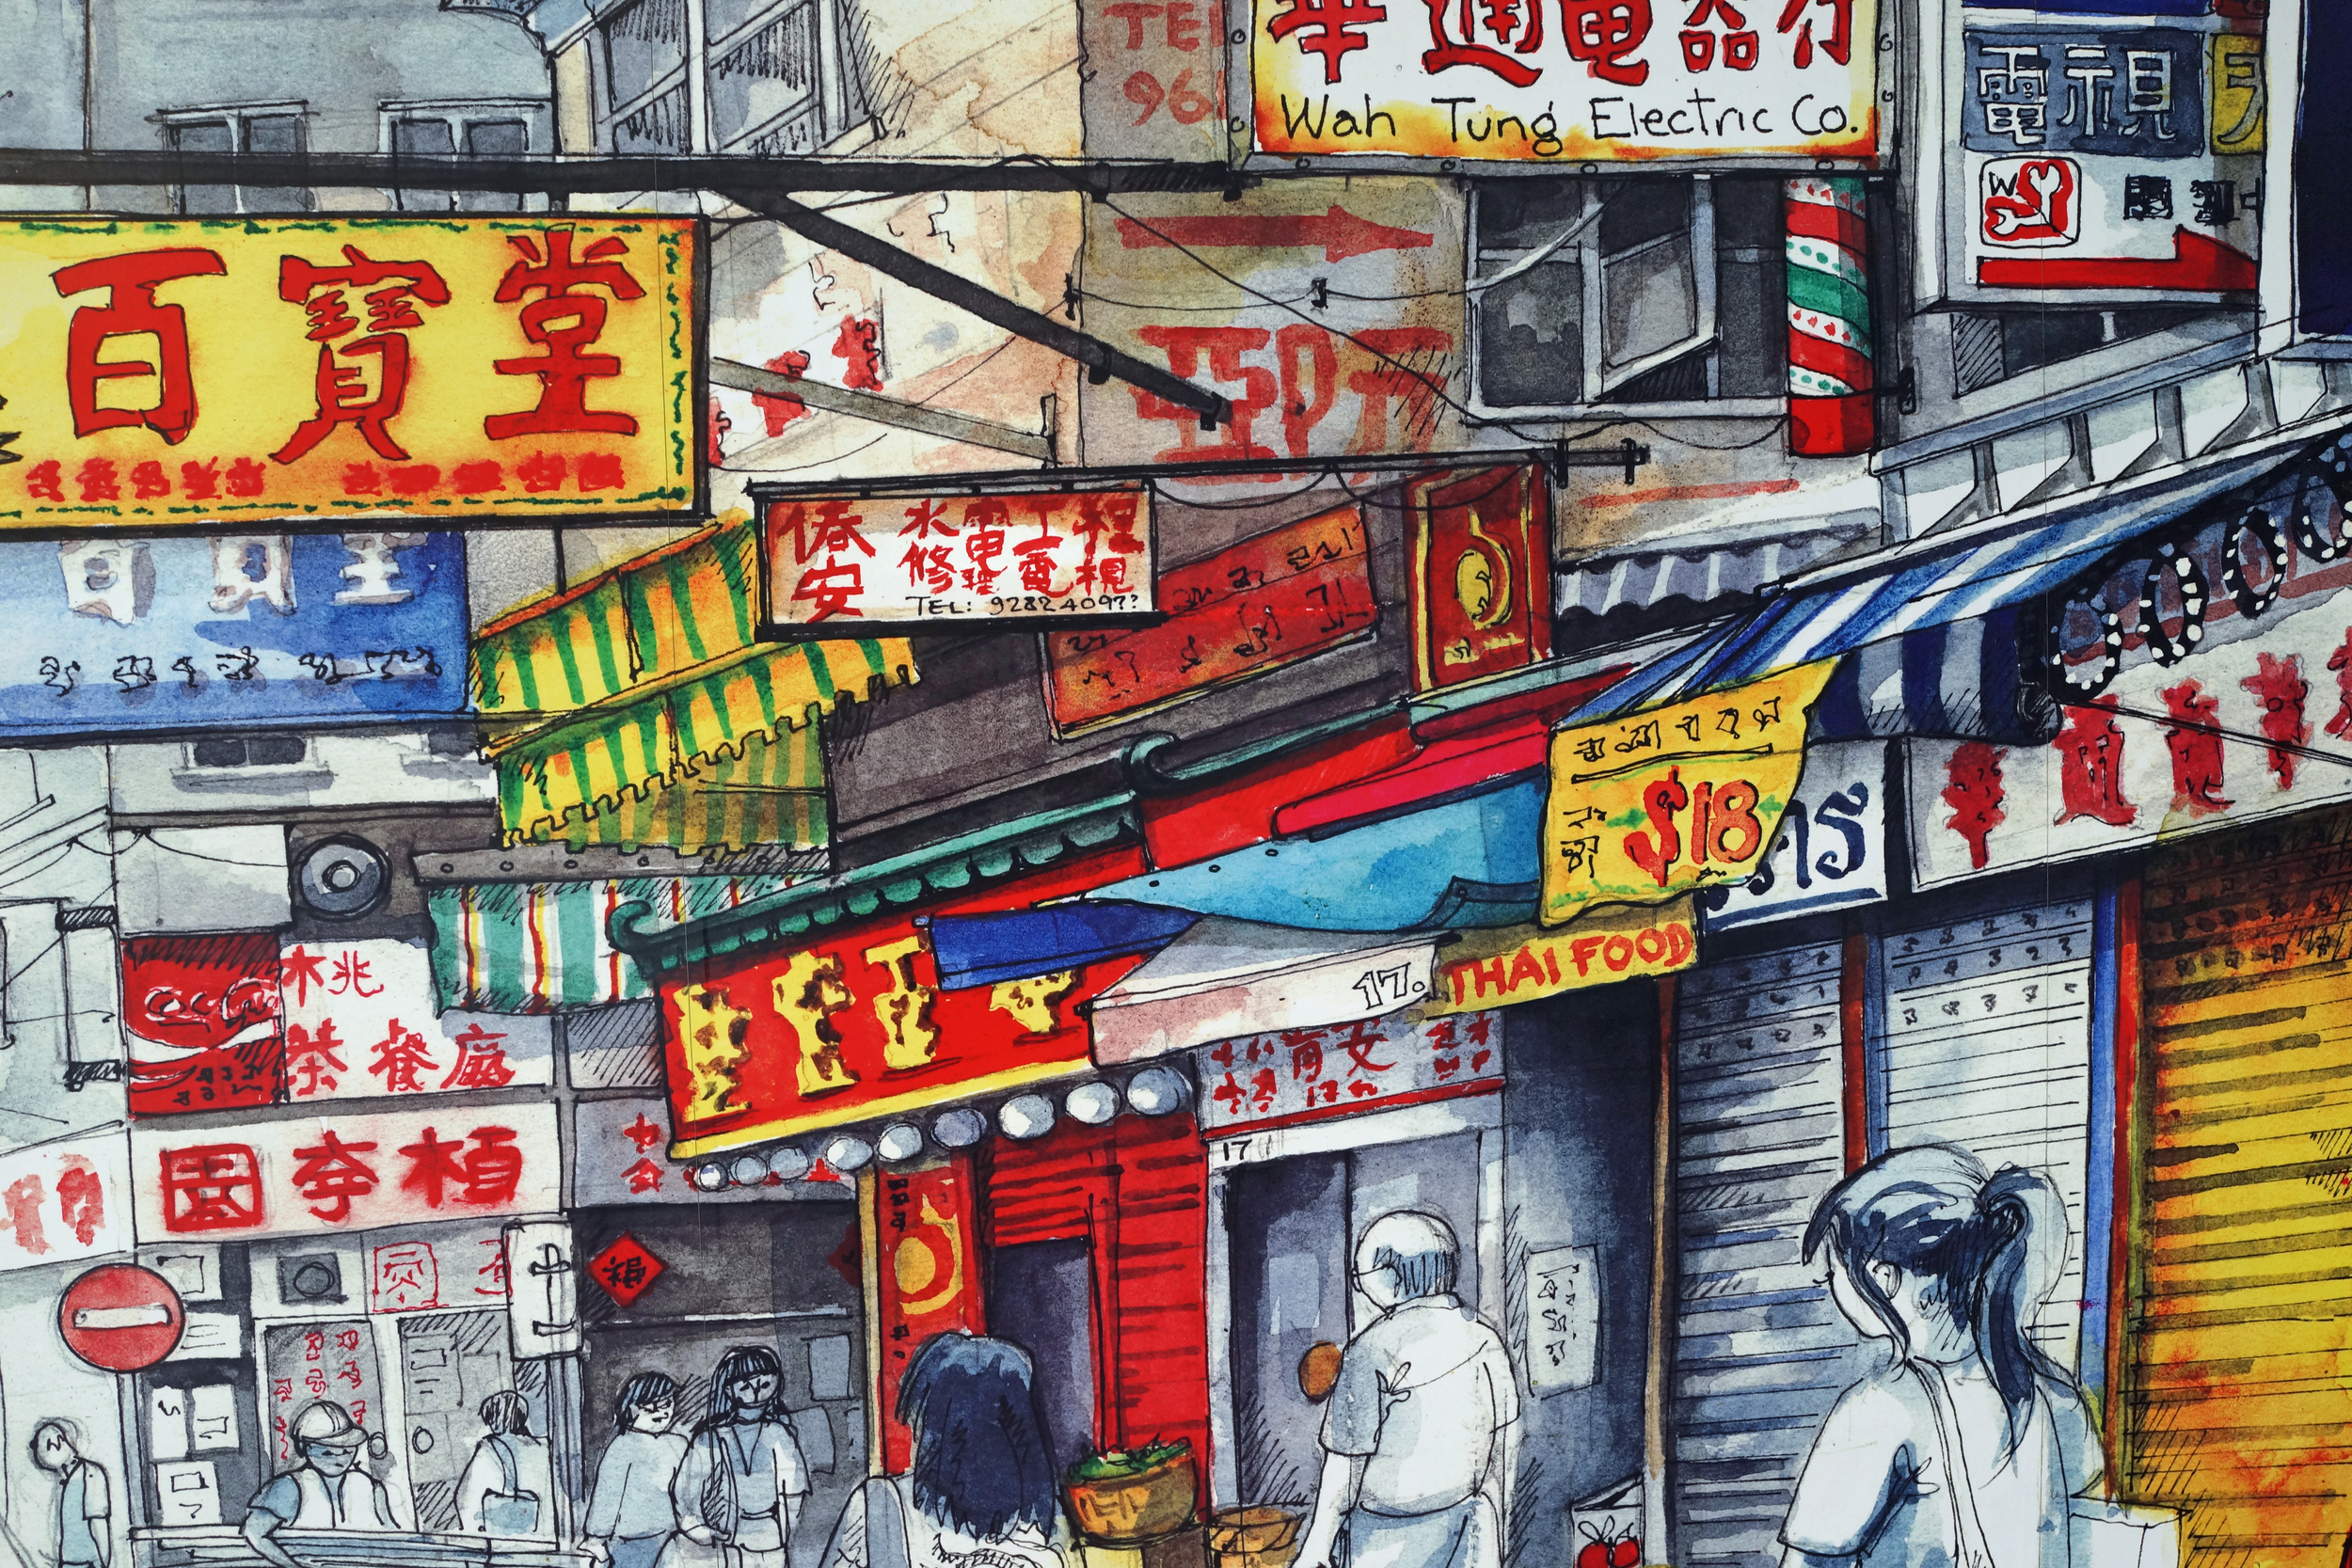 I saw this wall of art next to a Hotel in Jordan and thought it was pretty well drawn, a fairly atypical street scene in Hong Kong.